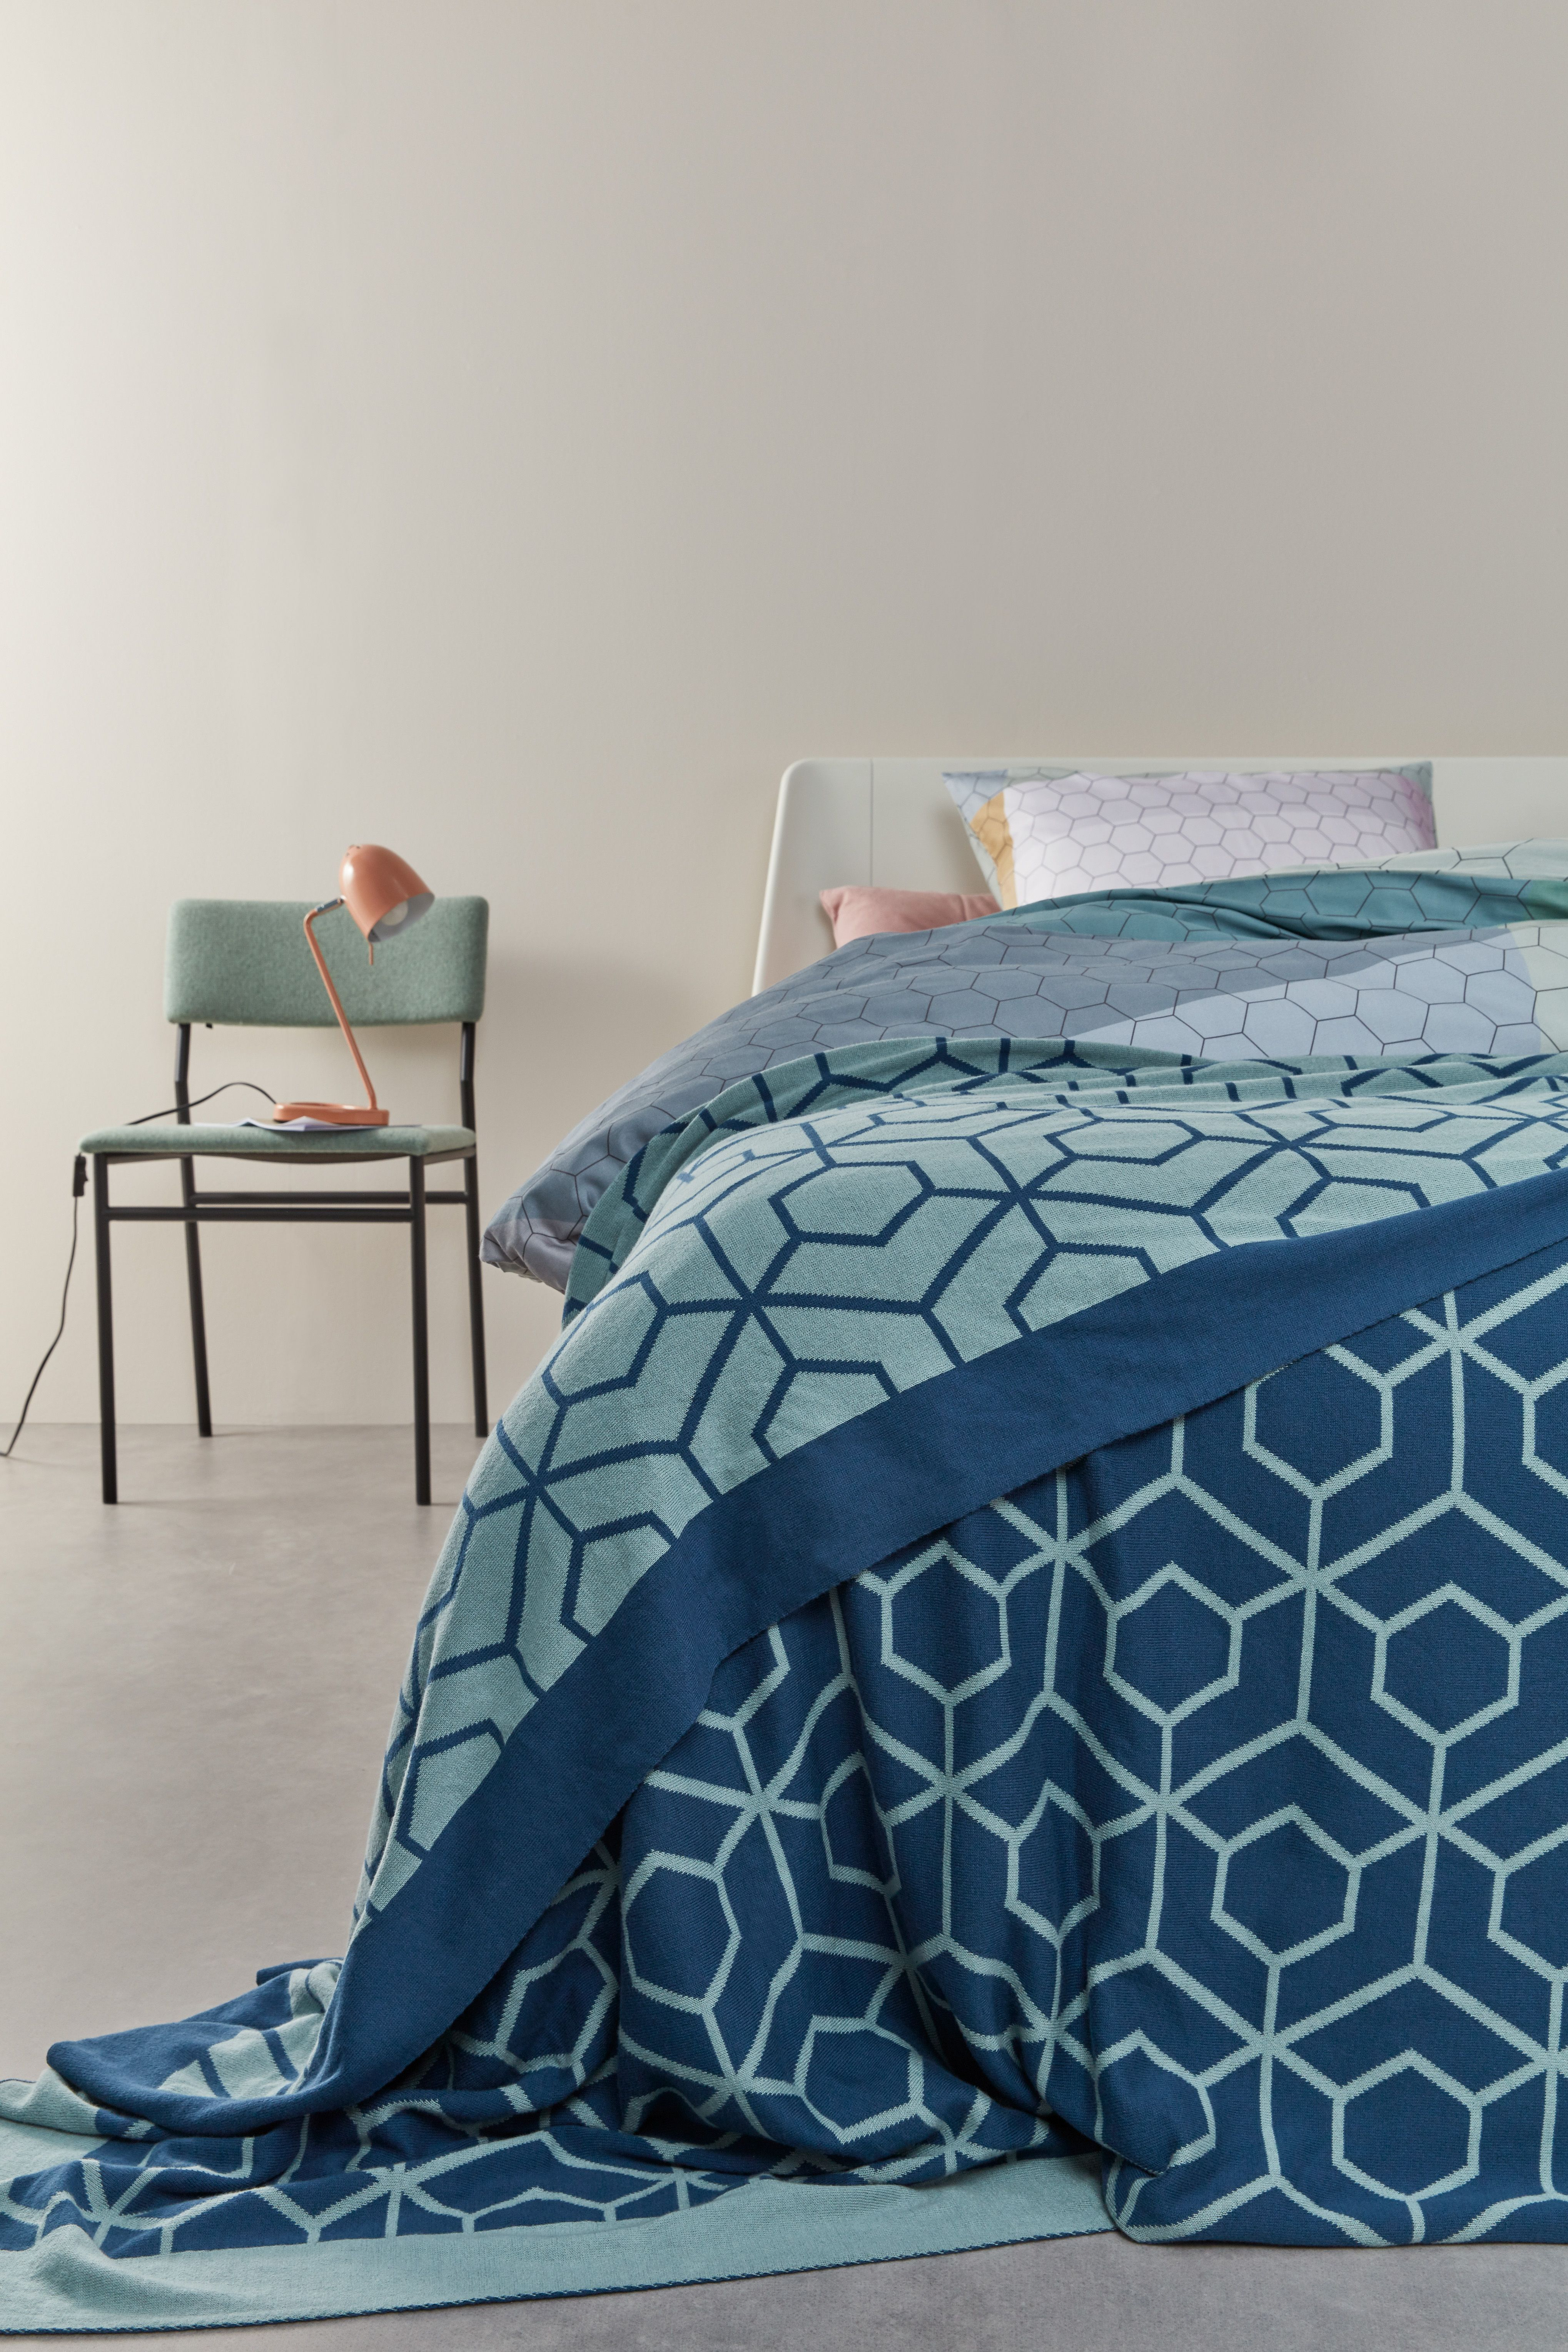 Aristotle bedsheets from the spring collection 2018 by Auping ...